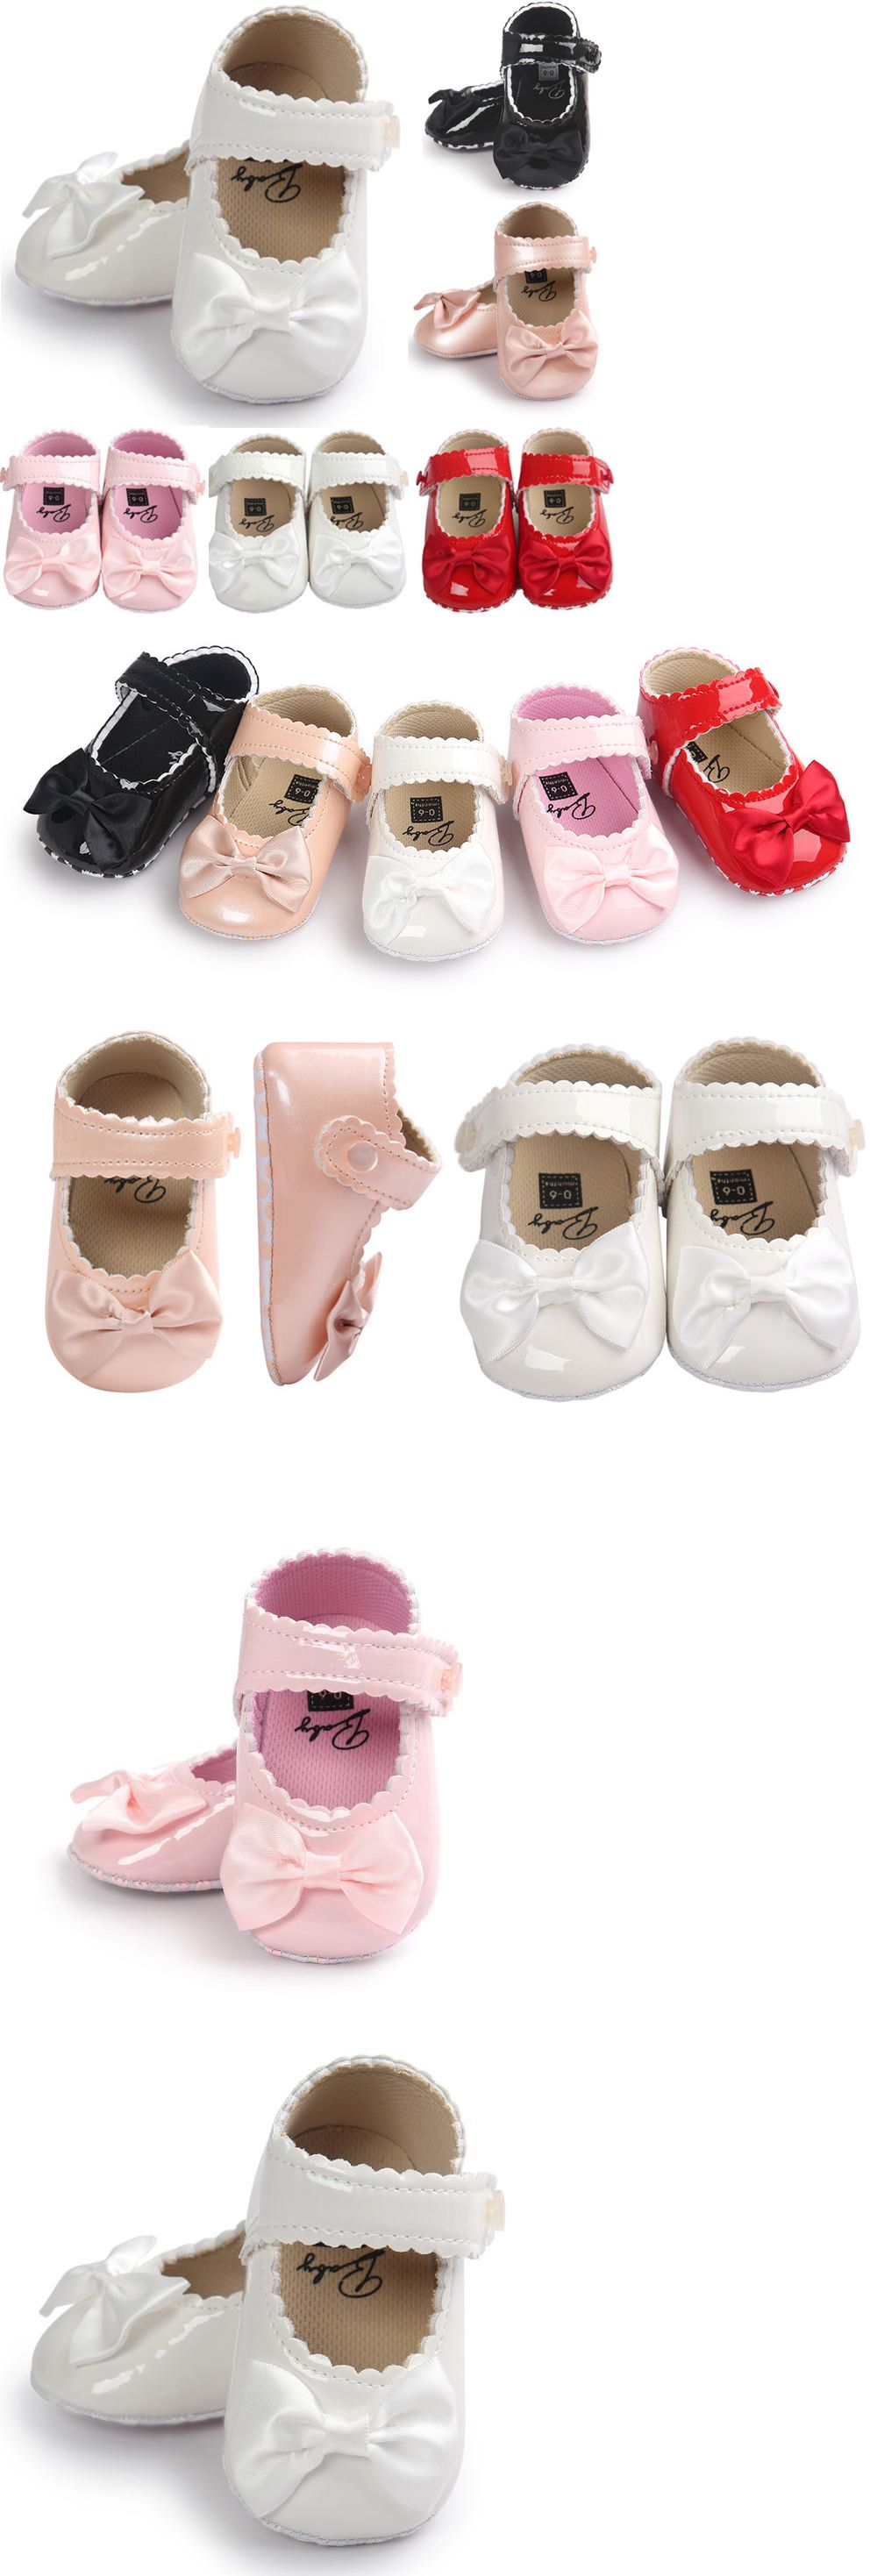 Used crib for sale ebay - Baby Girls Shoes Newborn Baby Girls Bow Anti Slip Leather Crib Shoes Soft Sole